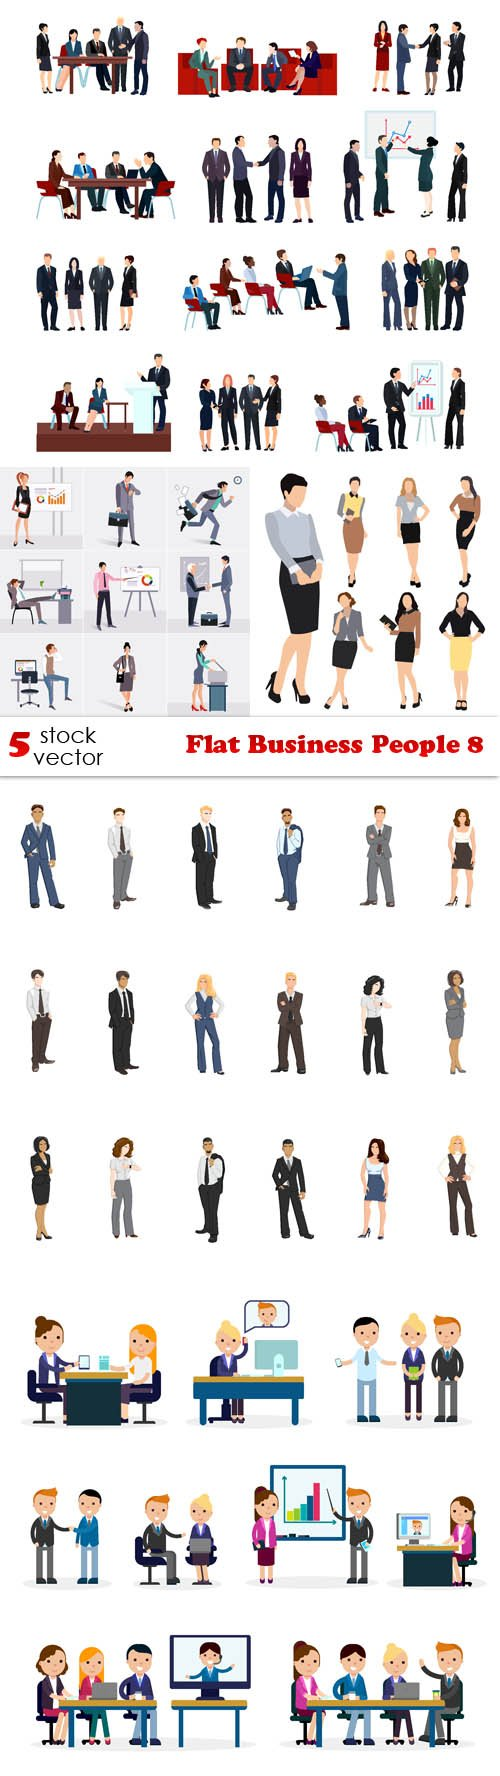 Vectors - Flat Business People 8